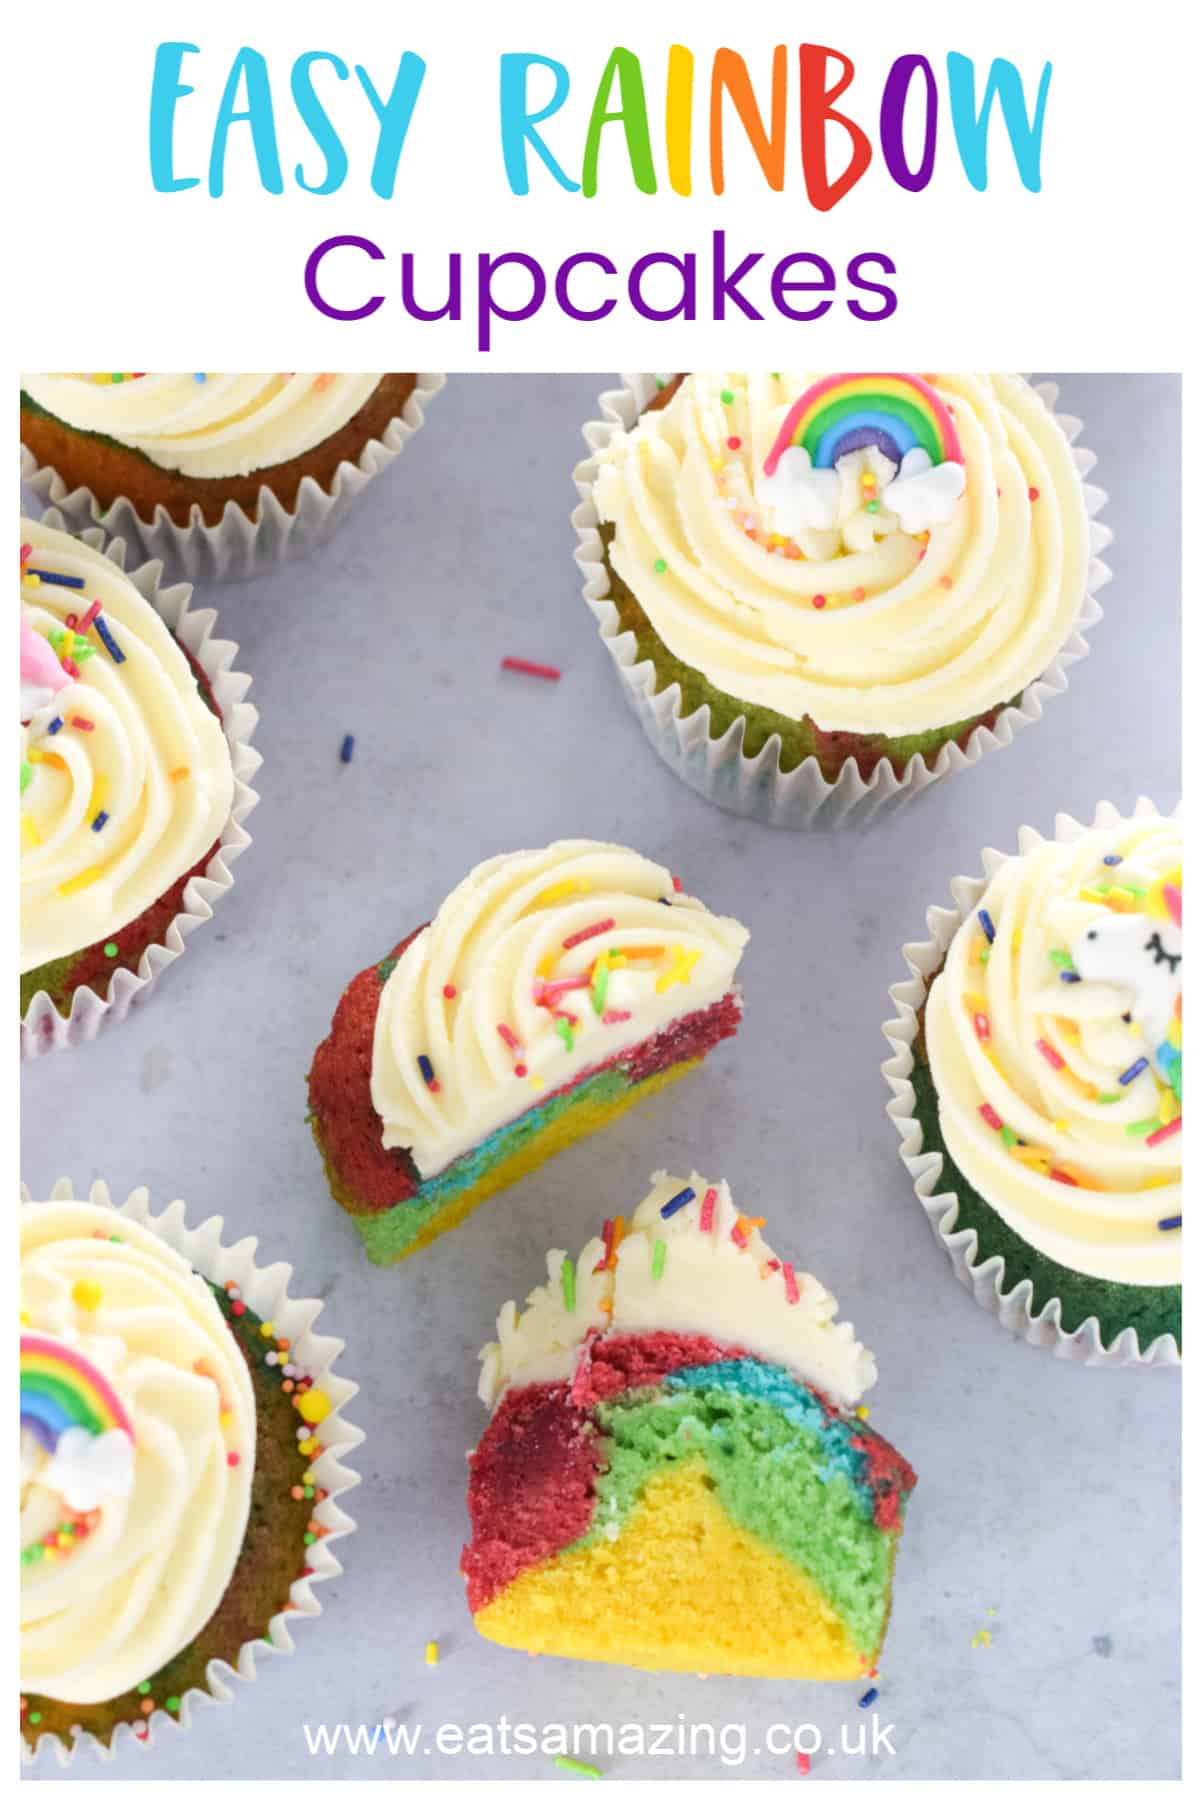 How to make easy rainbow cupcakes - fun baking recipe for kids